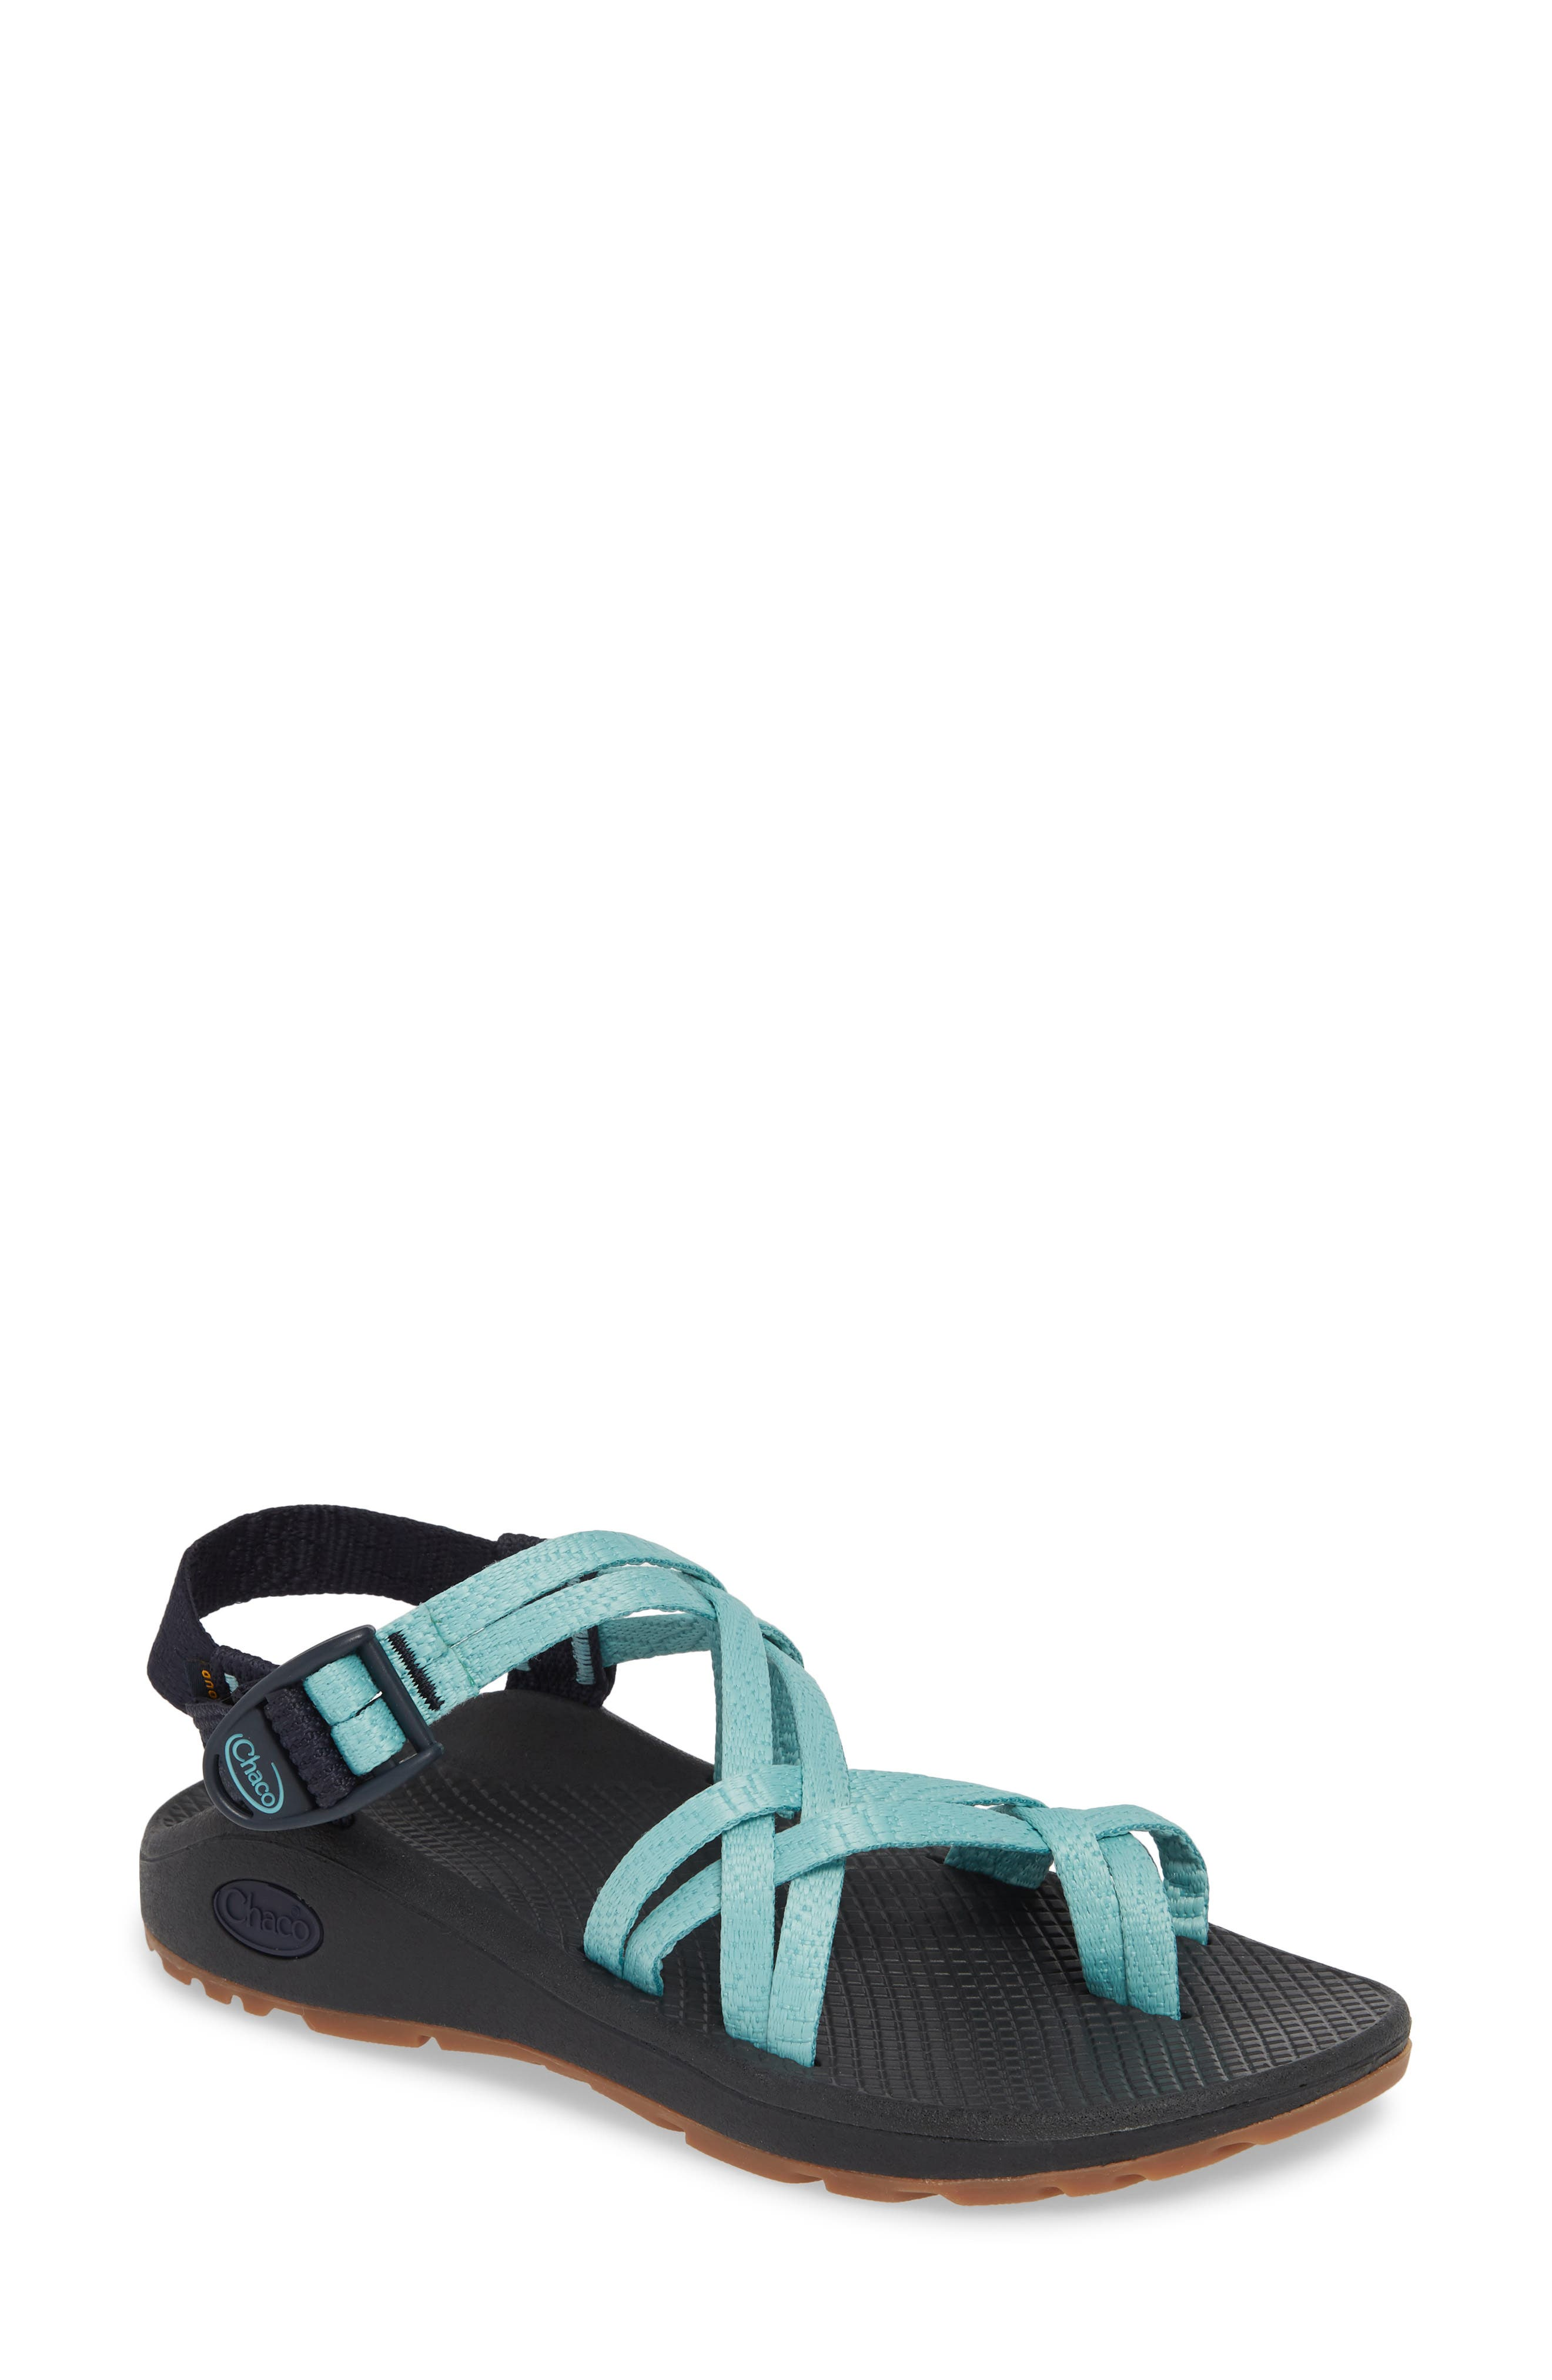 Chaco All Women  d3f79acd5b2